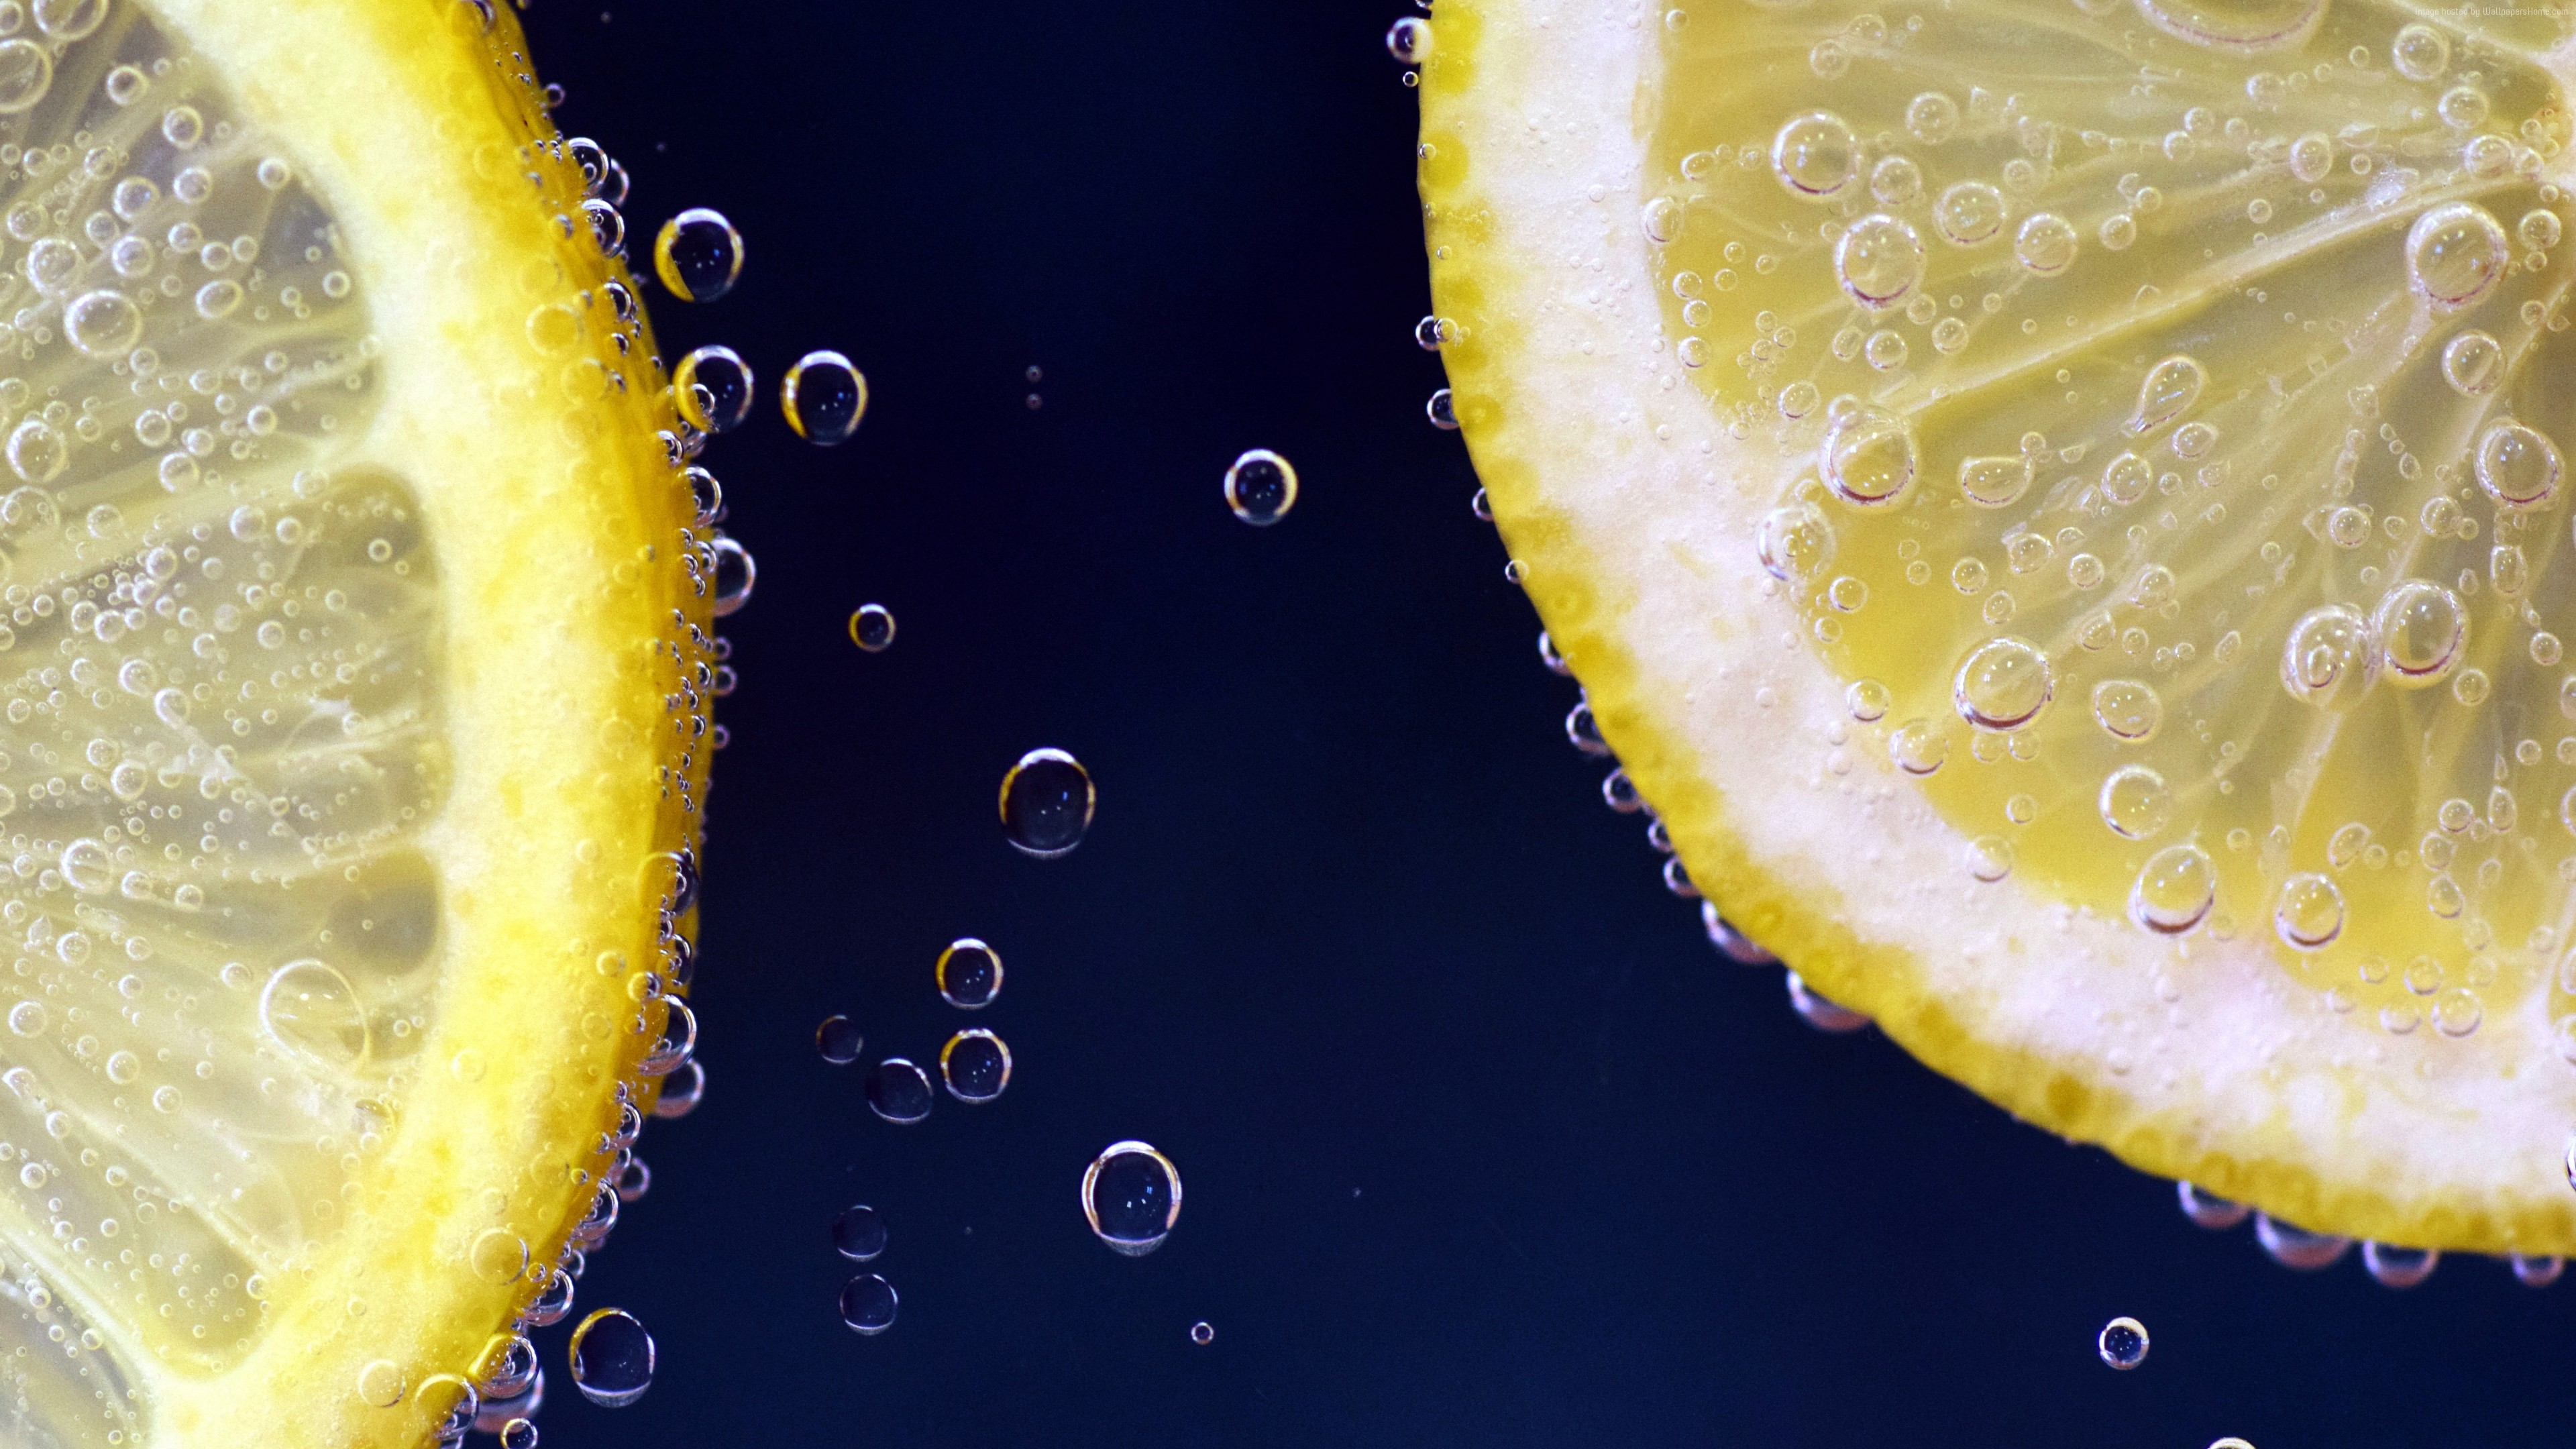 Stock Images lemon, under water, 6k, Stock Images